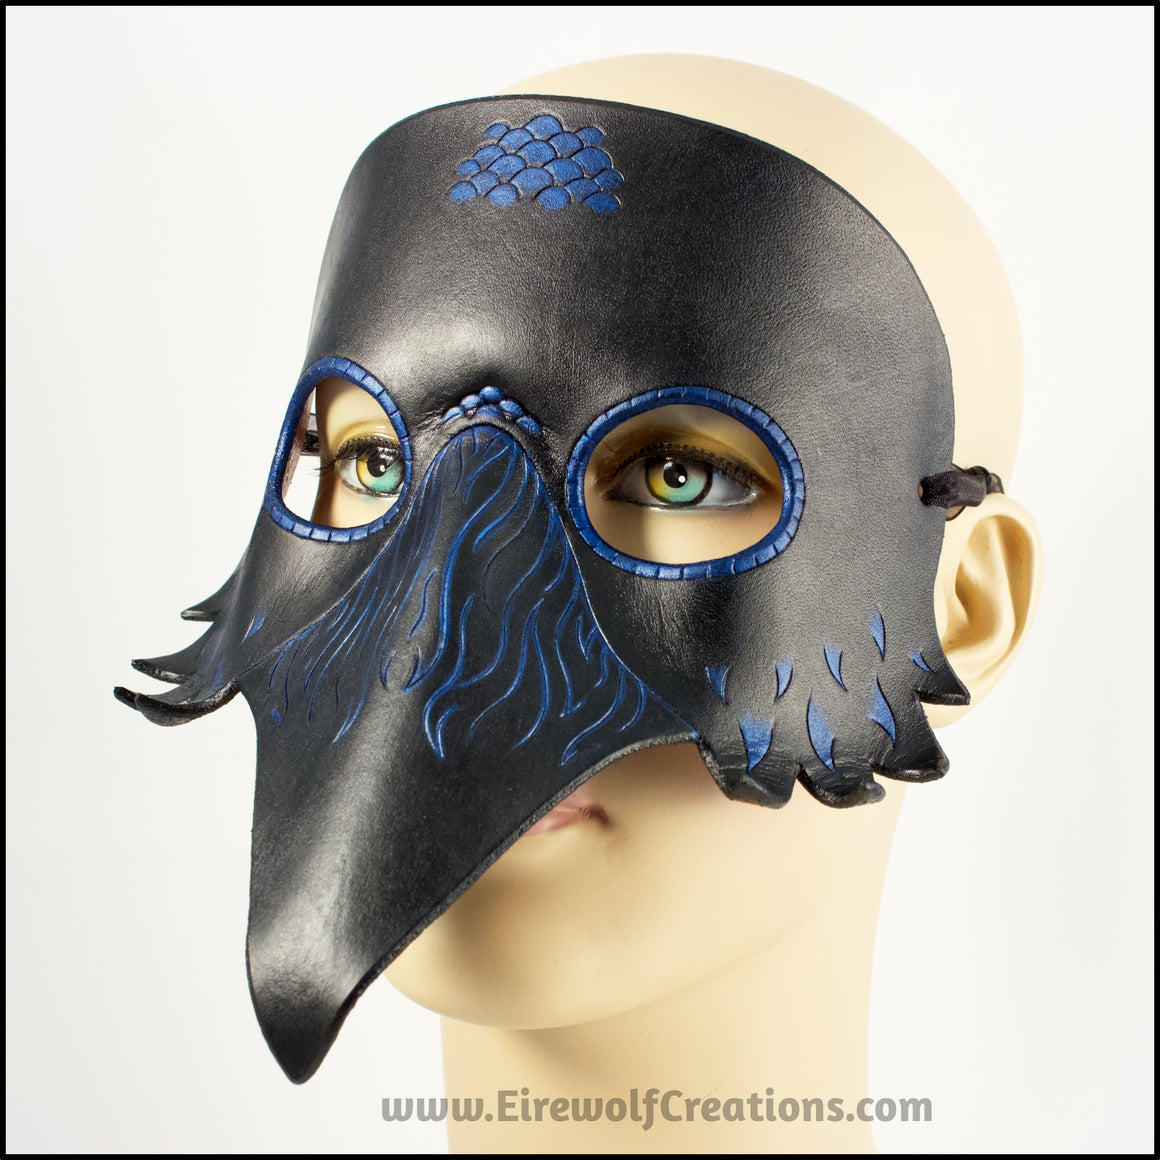 Raven mask leather crow masquerade costume Halloween Mardi Gras Trickster larp black bird